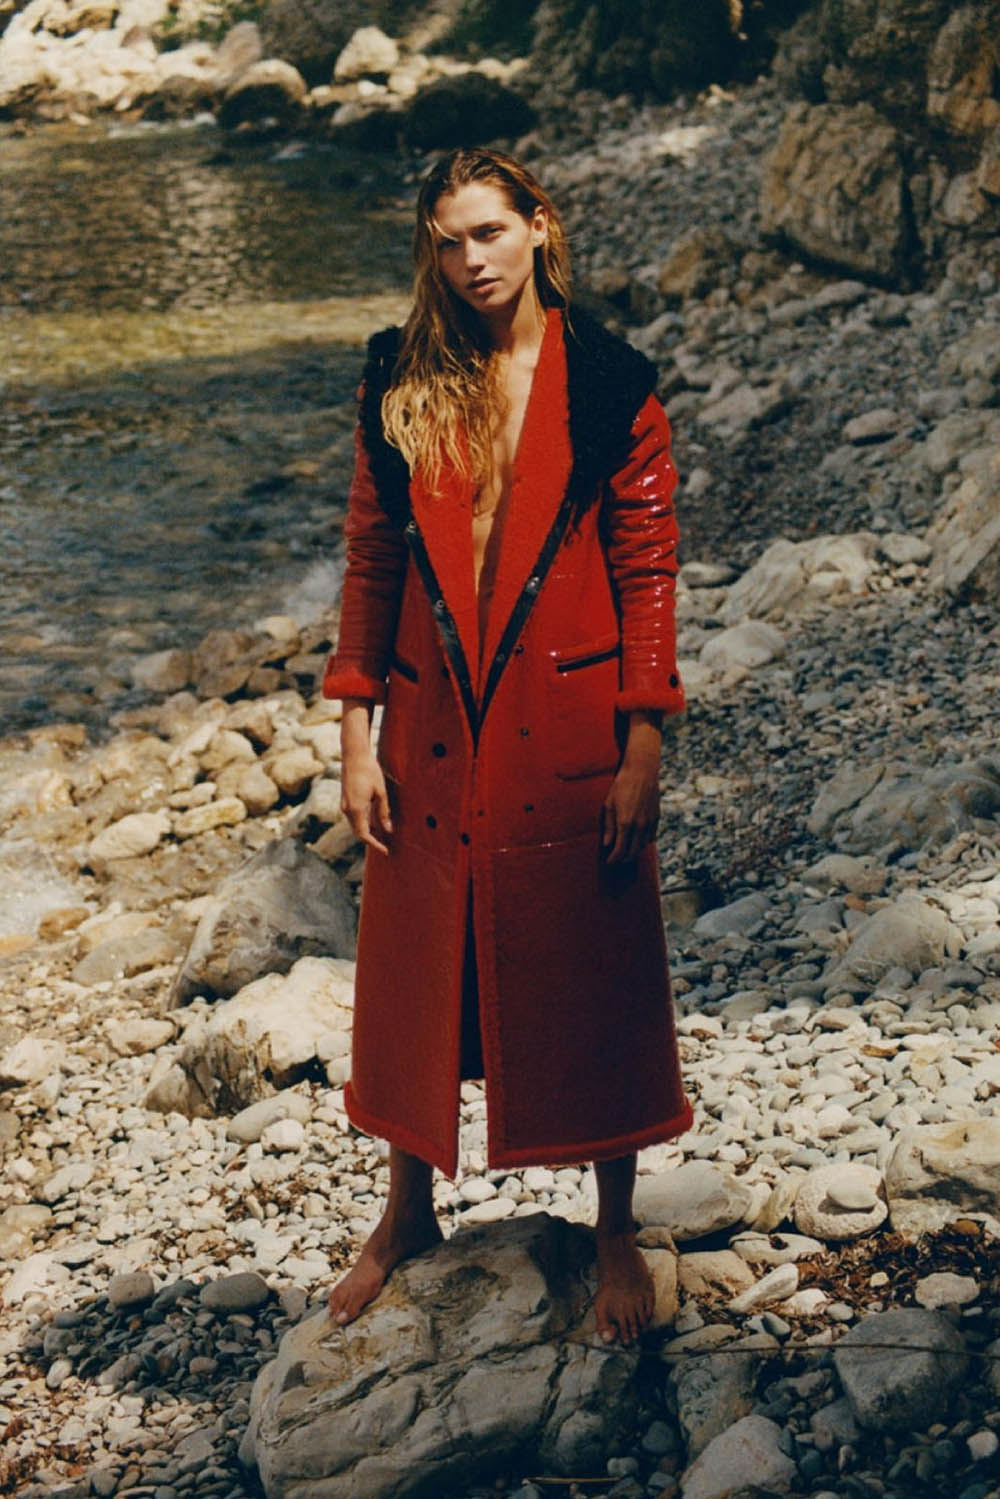 Hana Jirickova by Henrik Purienne for Vogue Paris October 2020